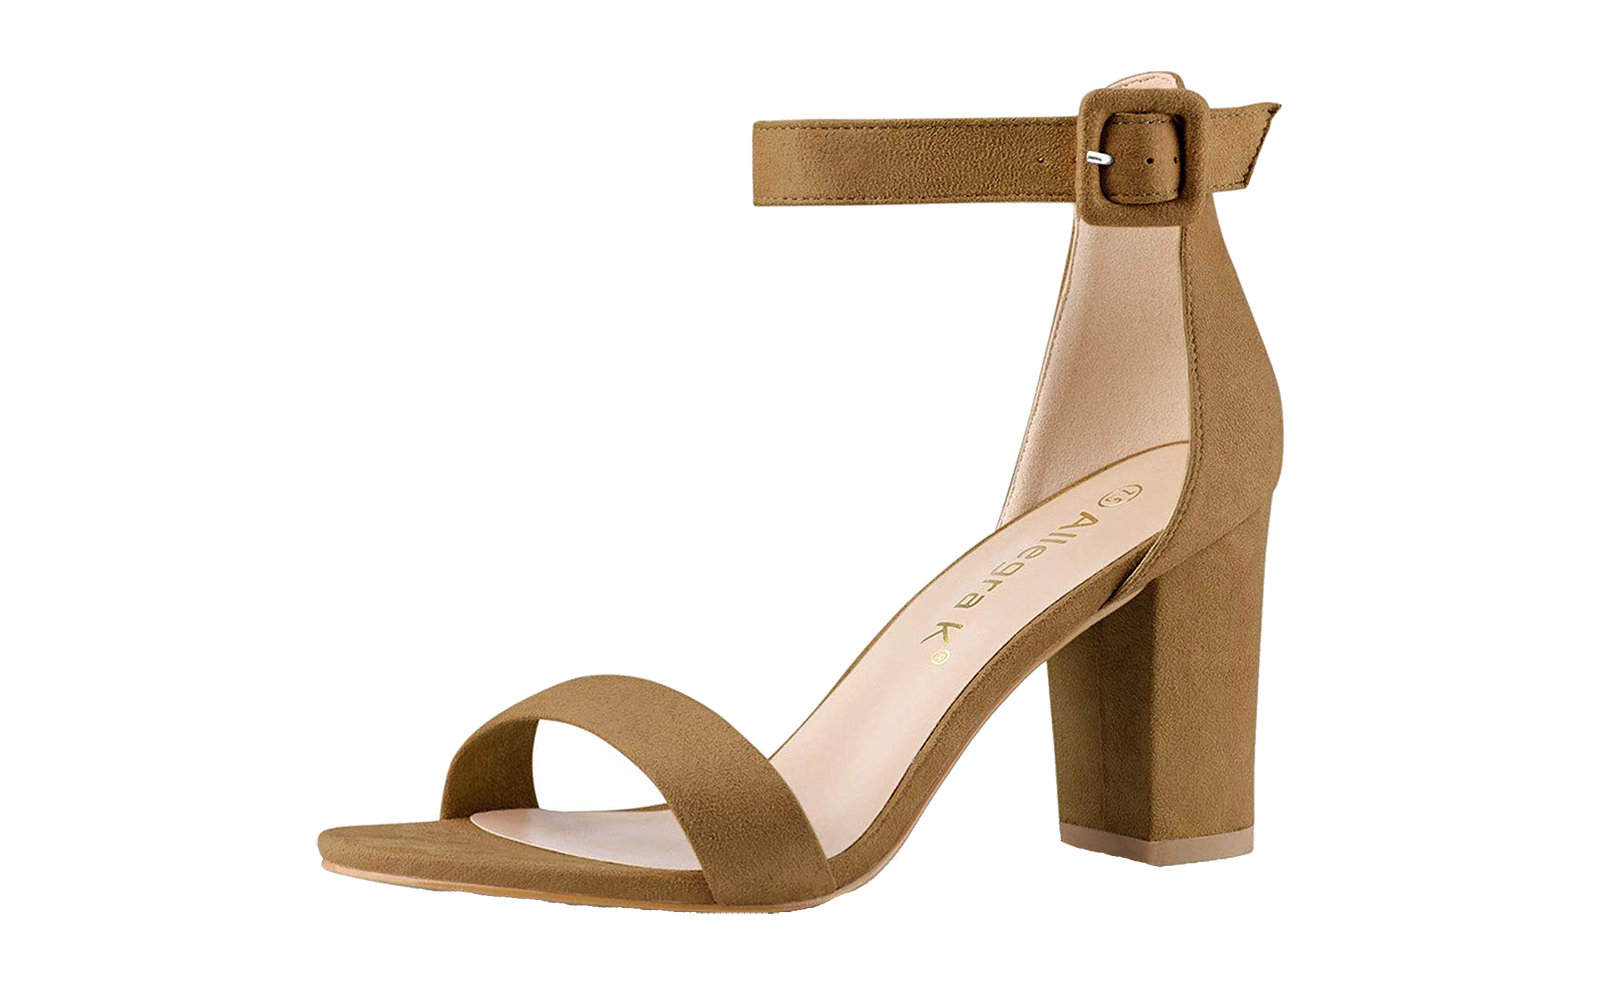 Most Comfortable Strappy Sandal: Allegra K Ankle Strap Sandal